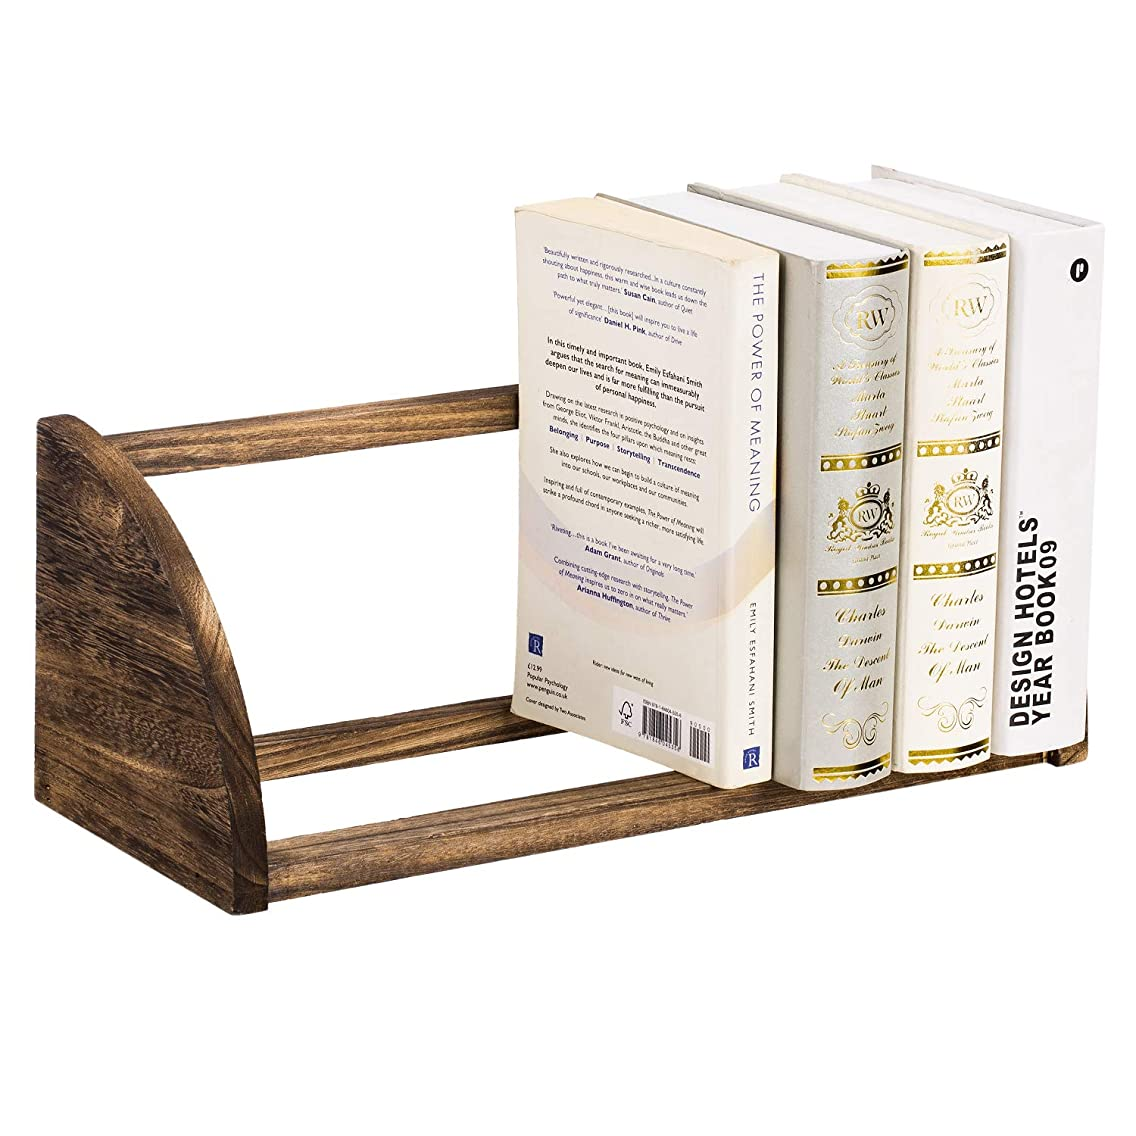 "NEX Book Shelf Desktop Bookcase Countertop Book Rack for Office & Kitchen, 16.2"" x 6.3"" x 6.6"", Natural Wood"